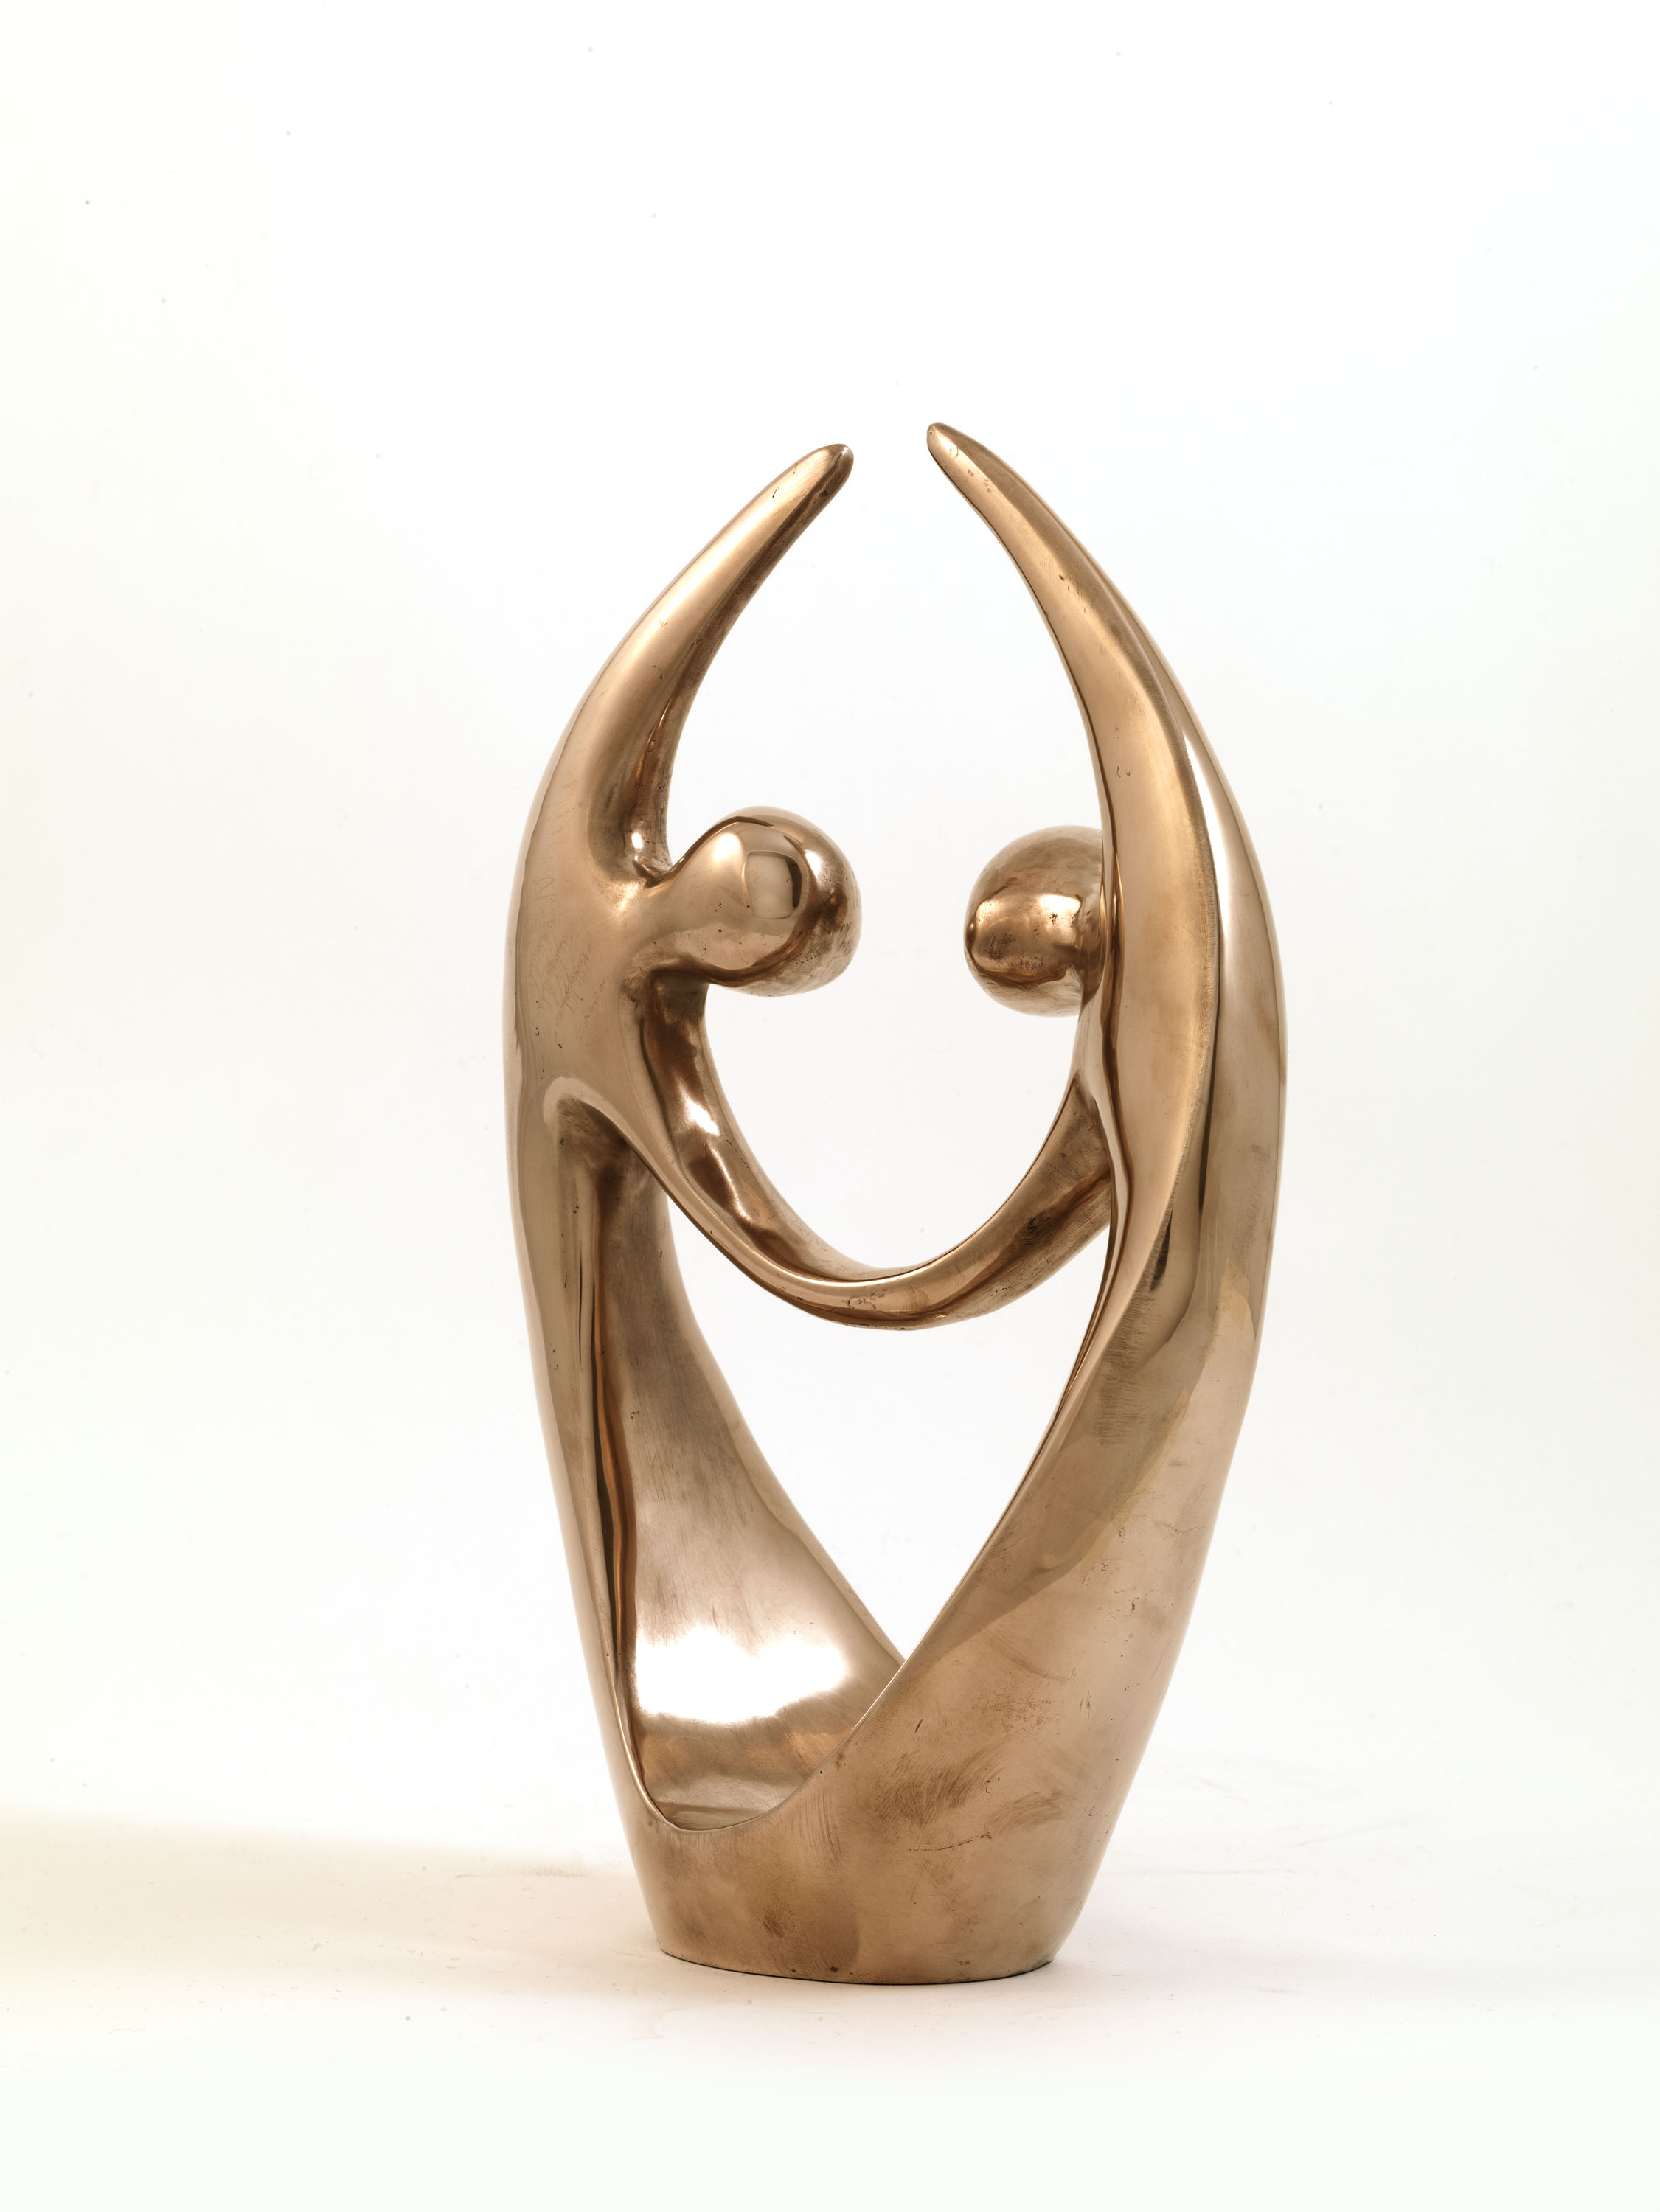 The Dancers (Bronze) by Julia Godsiff